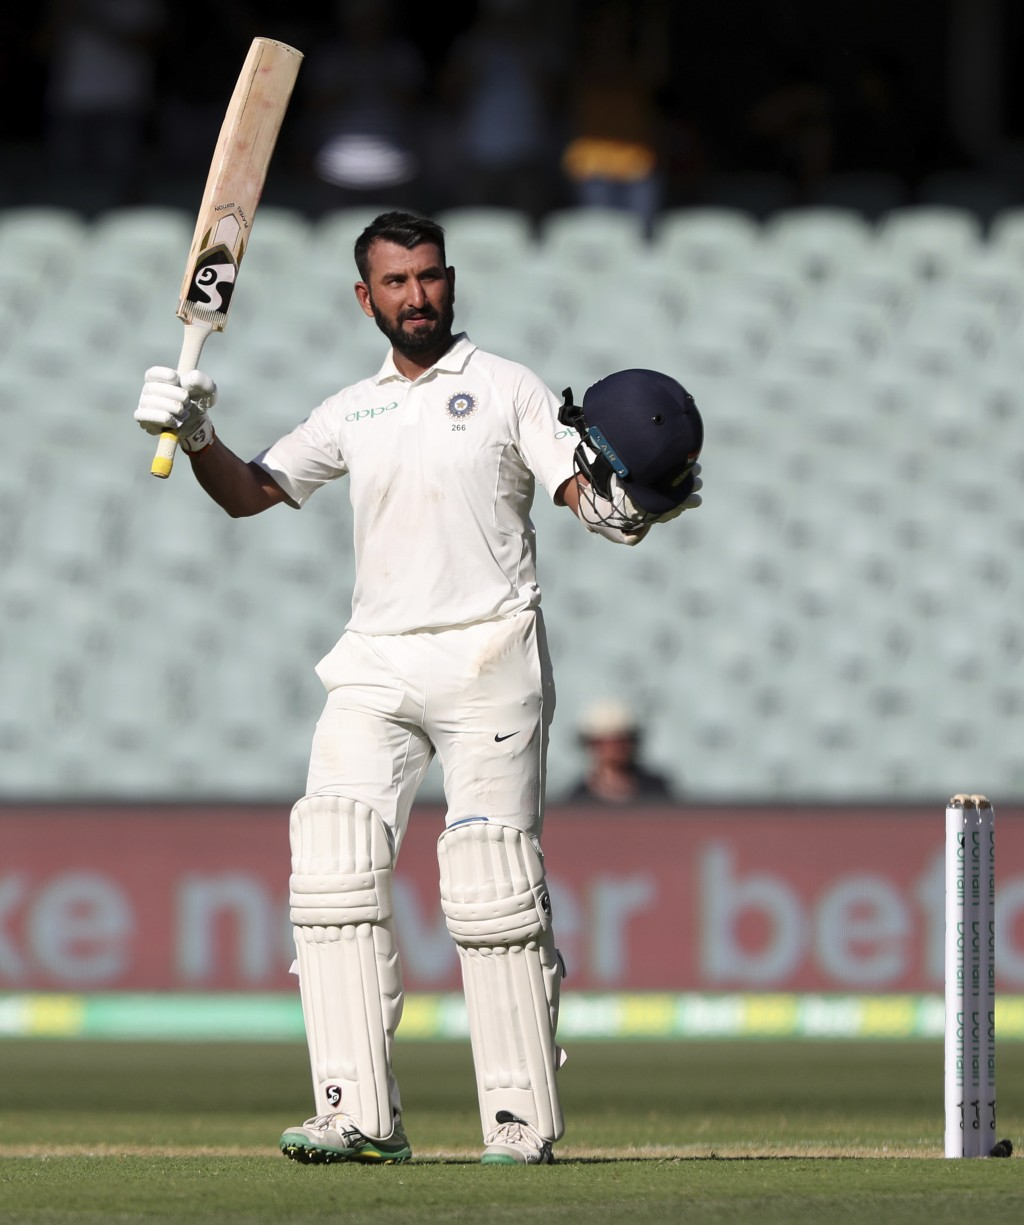 India's Cheteshwar Pujara celebrates after reaching a century during the first cricket test between Australia and India in Adelaide, Australia,Thursda